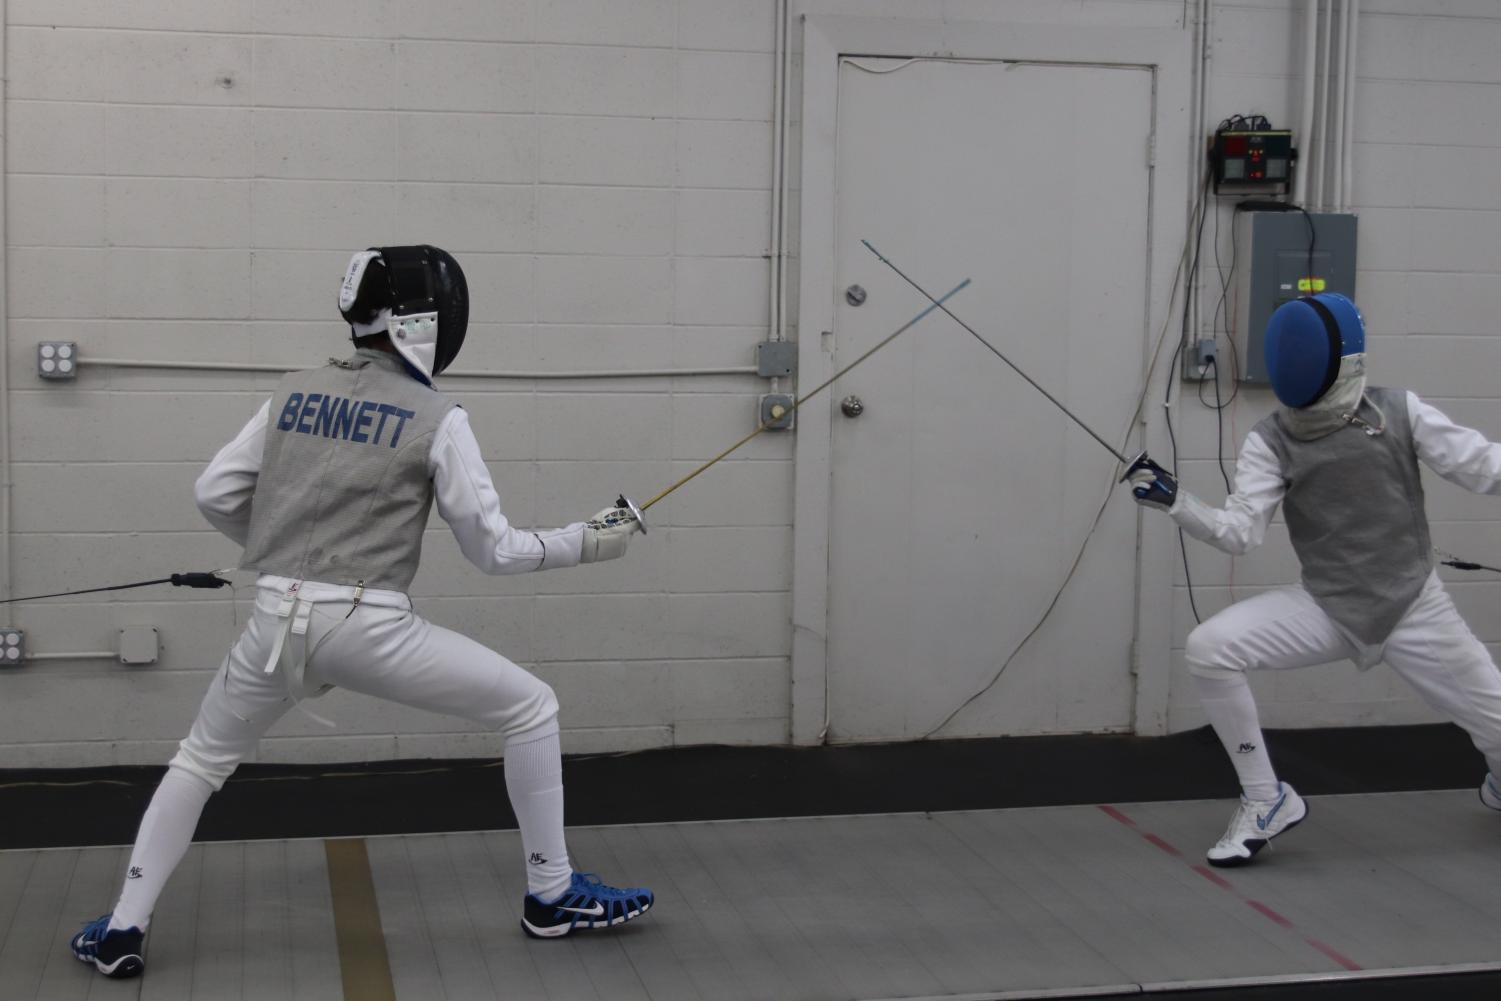 Joseph Bennett '20 duels with a fellow fencer at the Iowa City Fencing Club where they train.